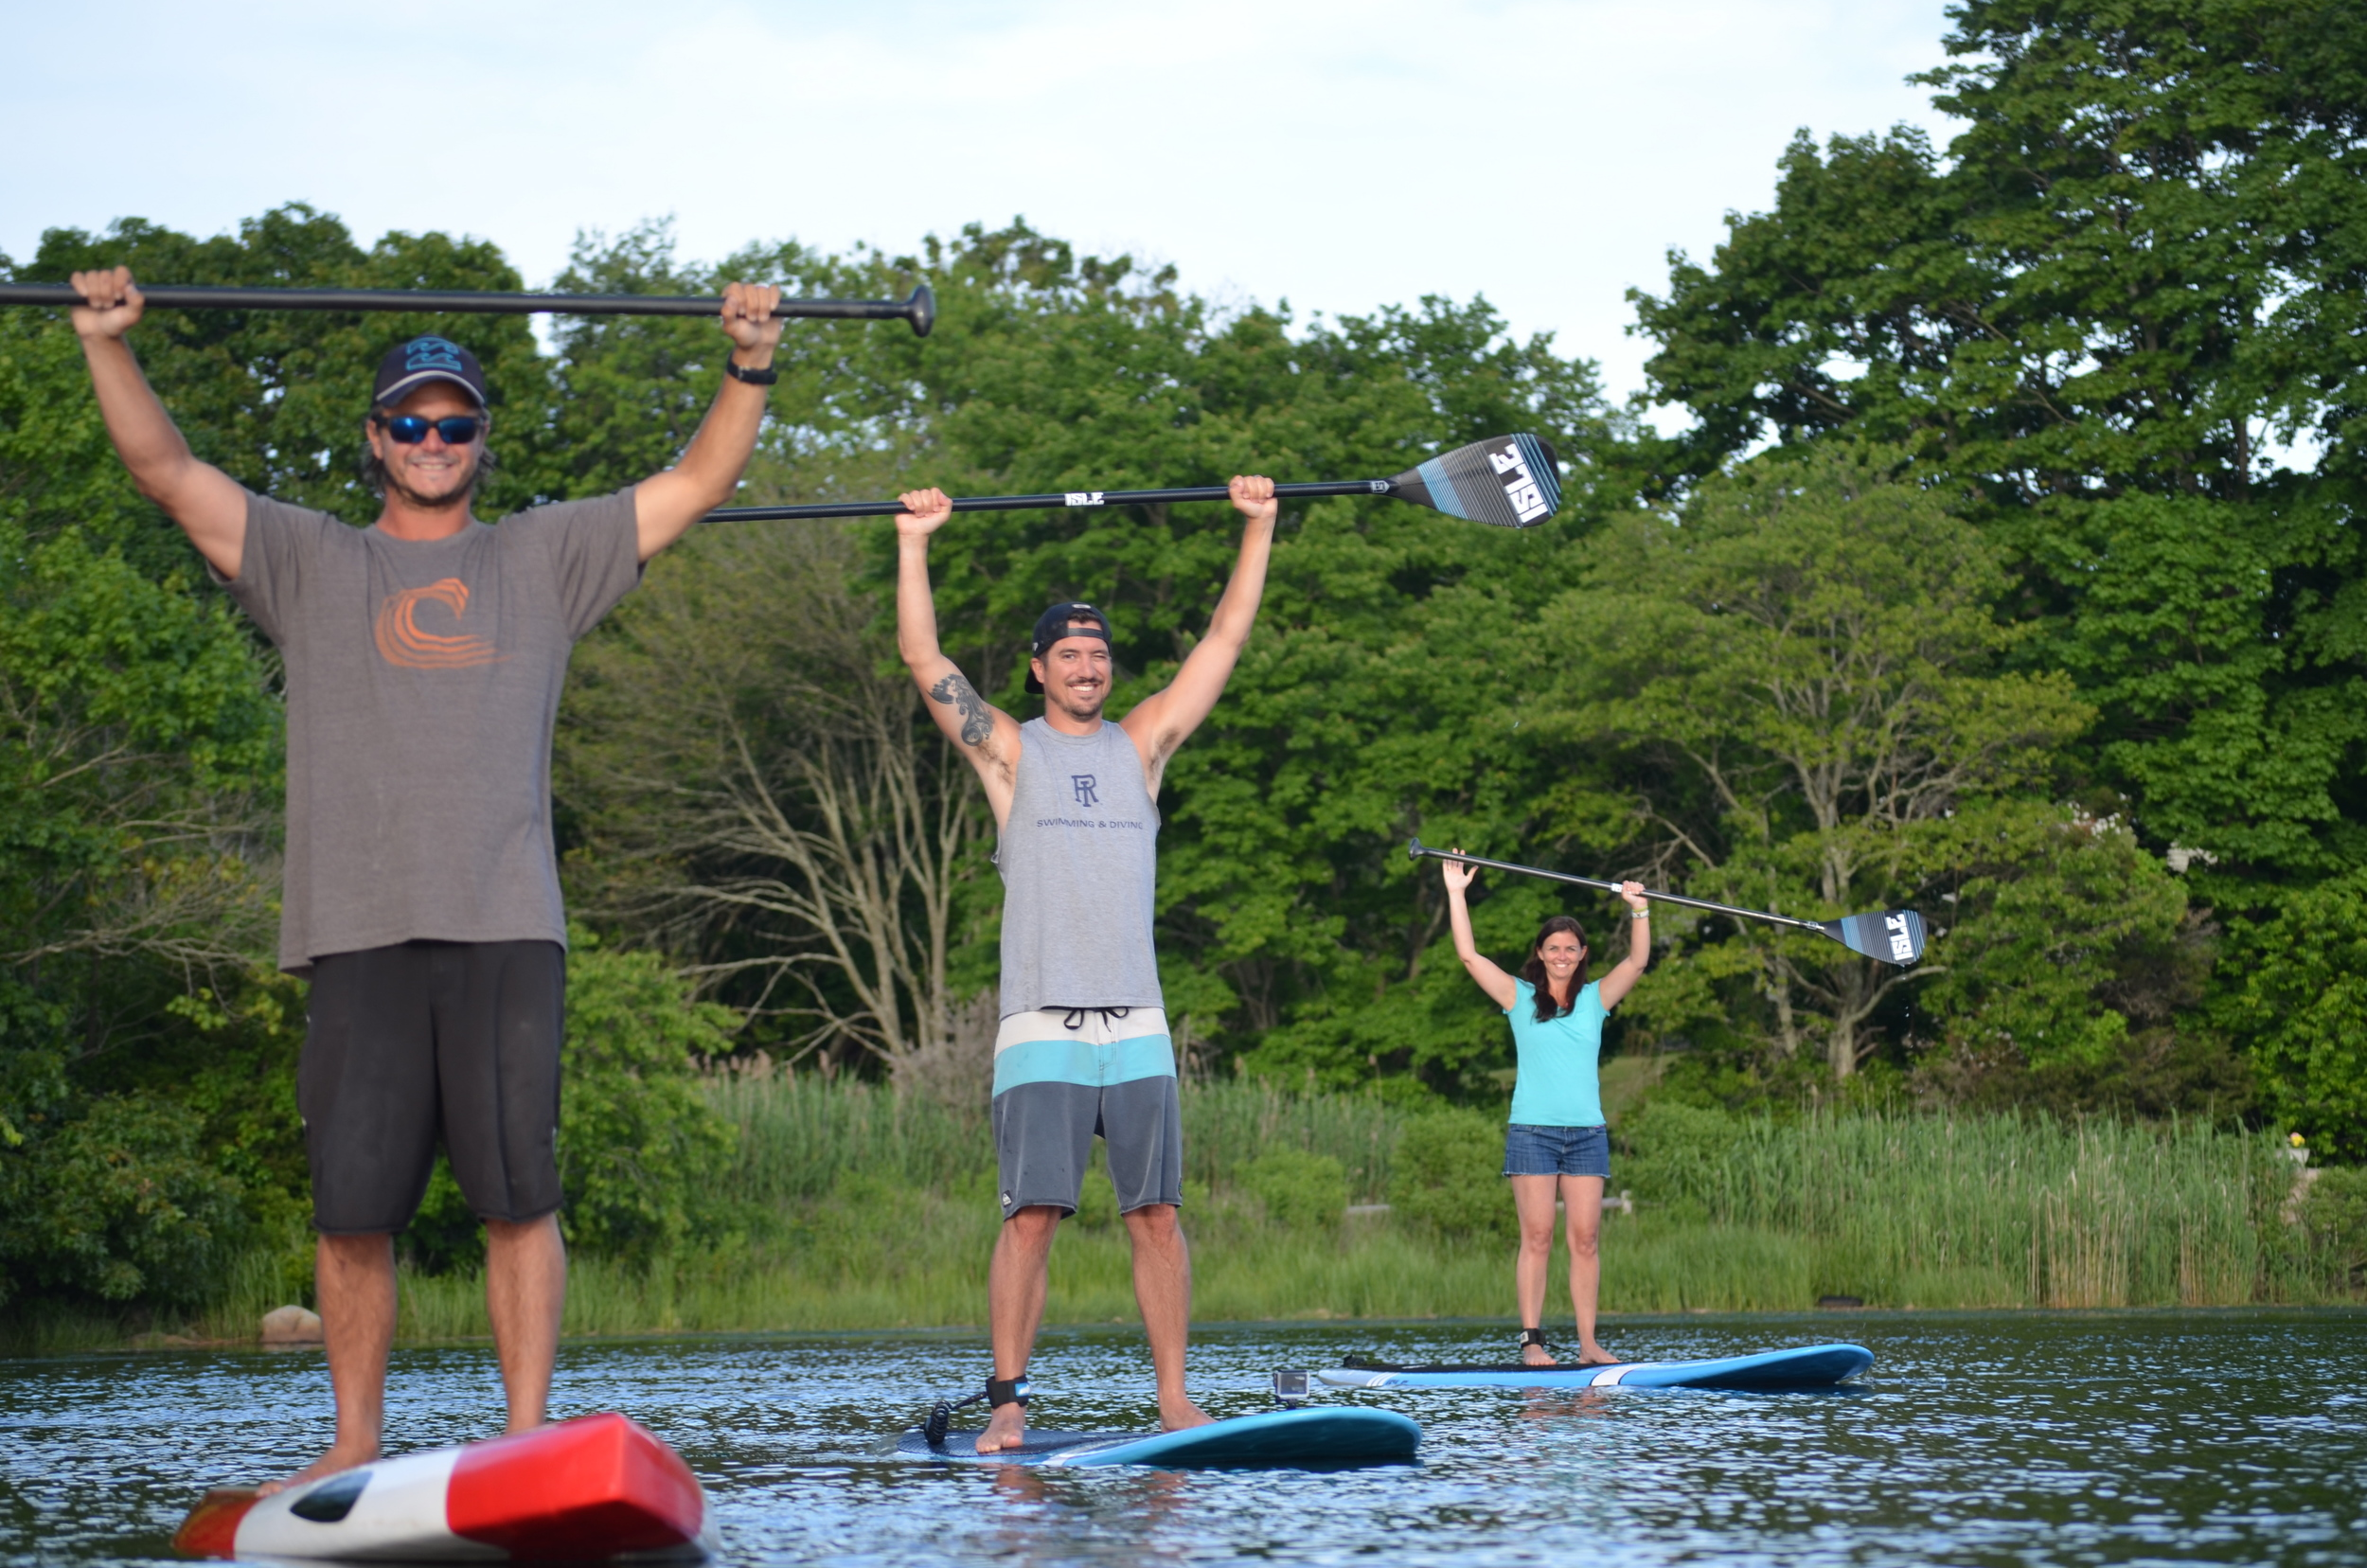 paddle surf ri, paddle board ri, coastline surf & paddle, peter pan surfing & sup academy, stand up paddle board, surf ri